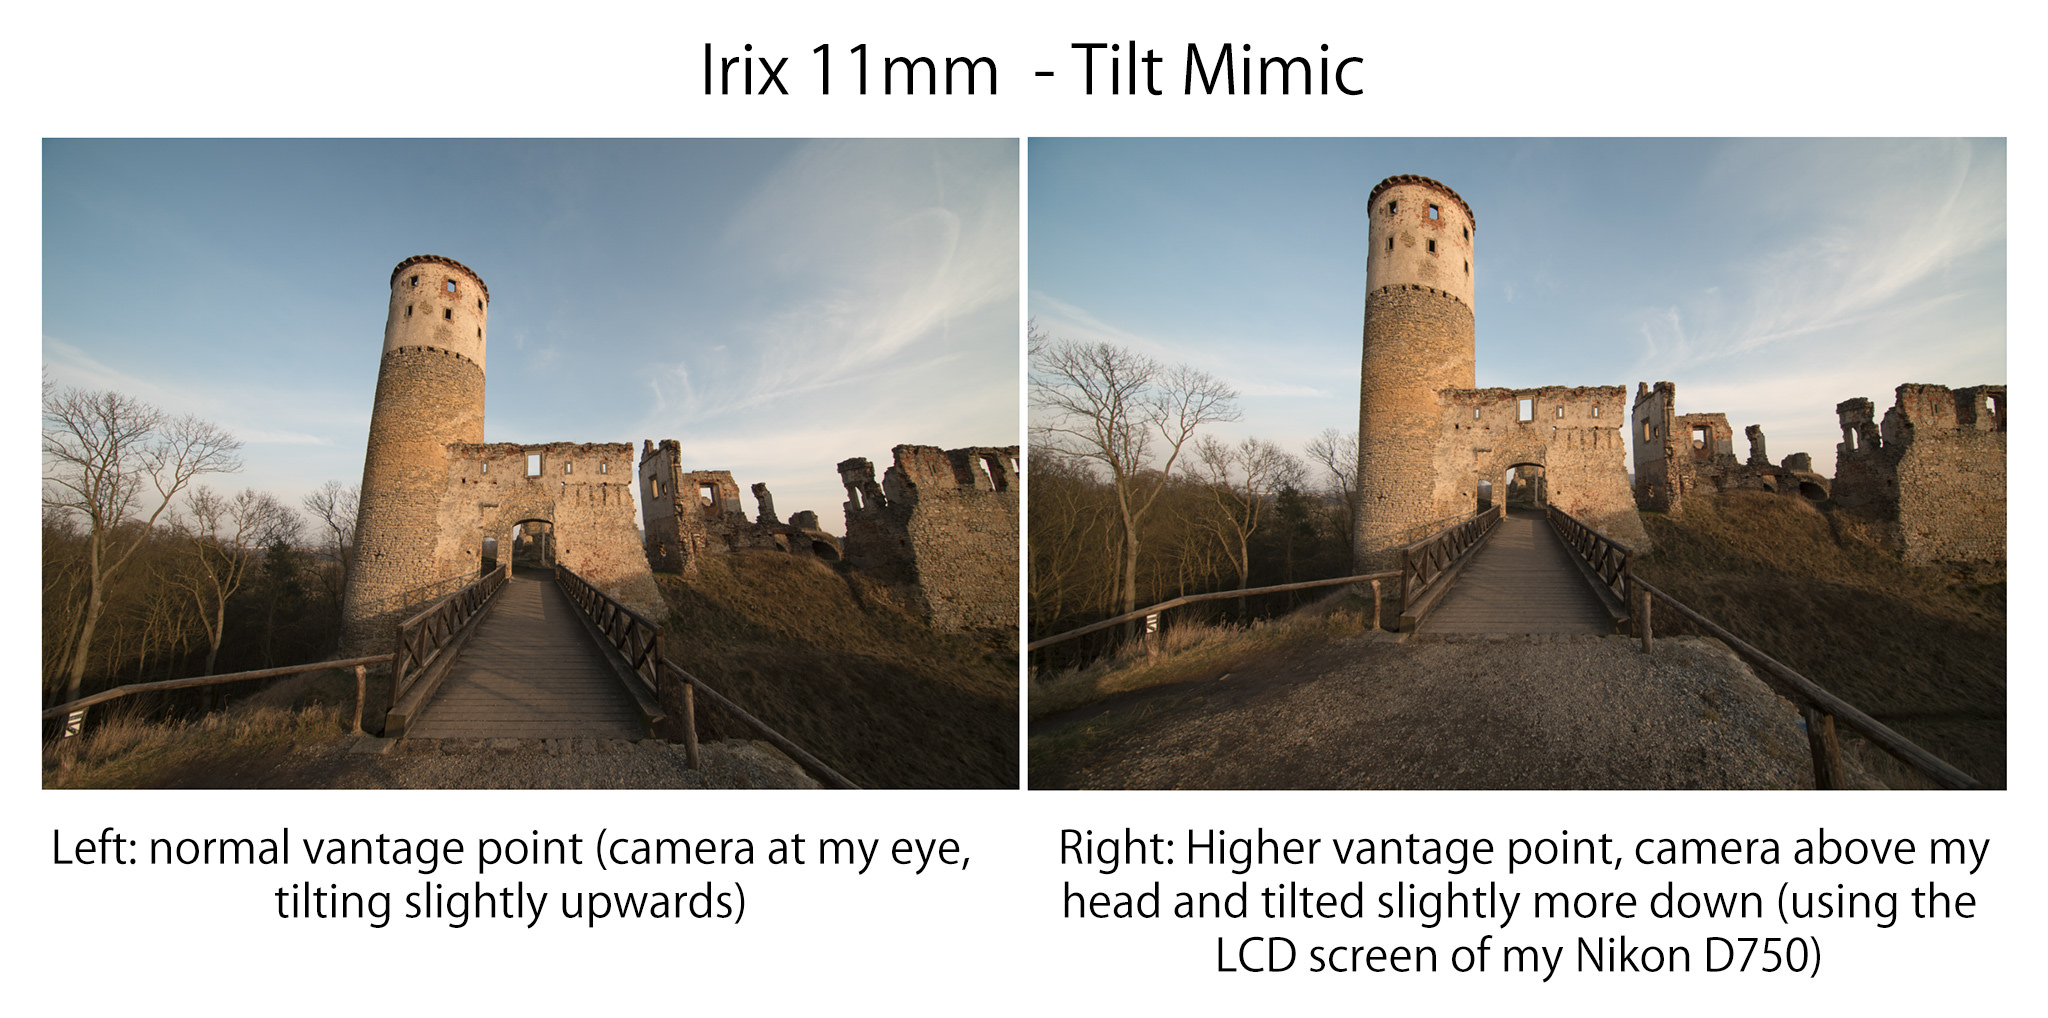 Irix 11mm f/4 Tilt Mimic